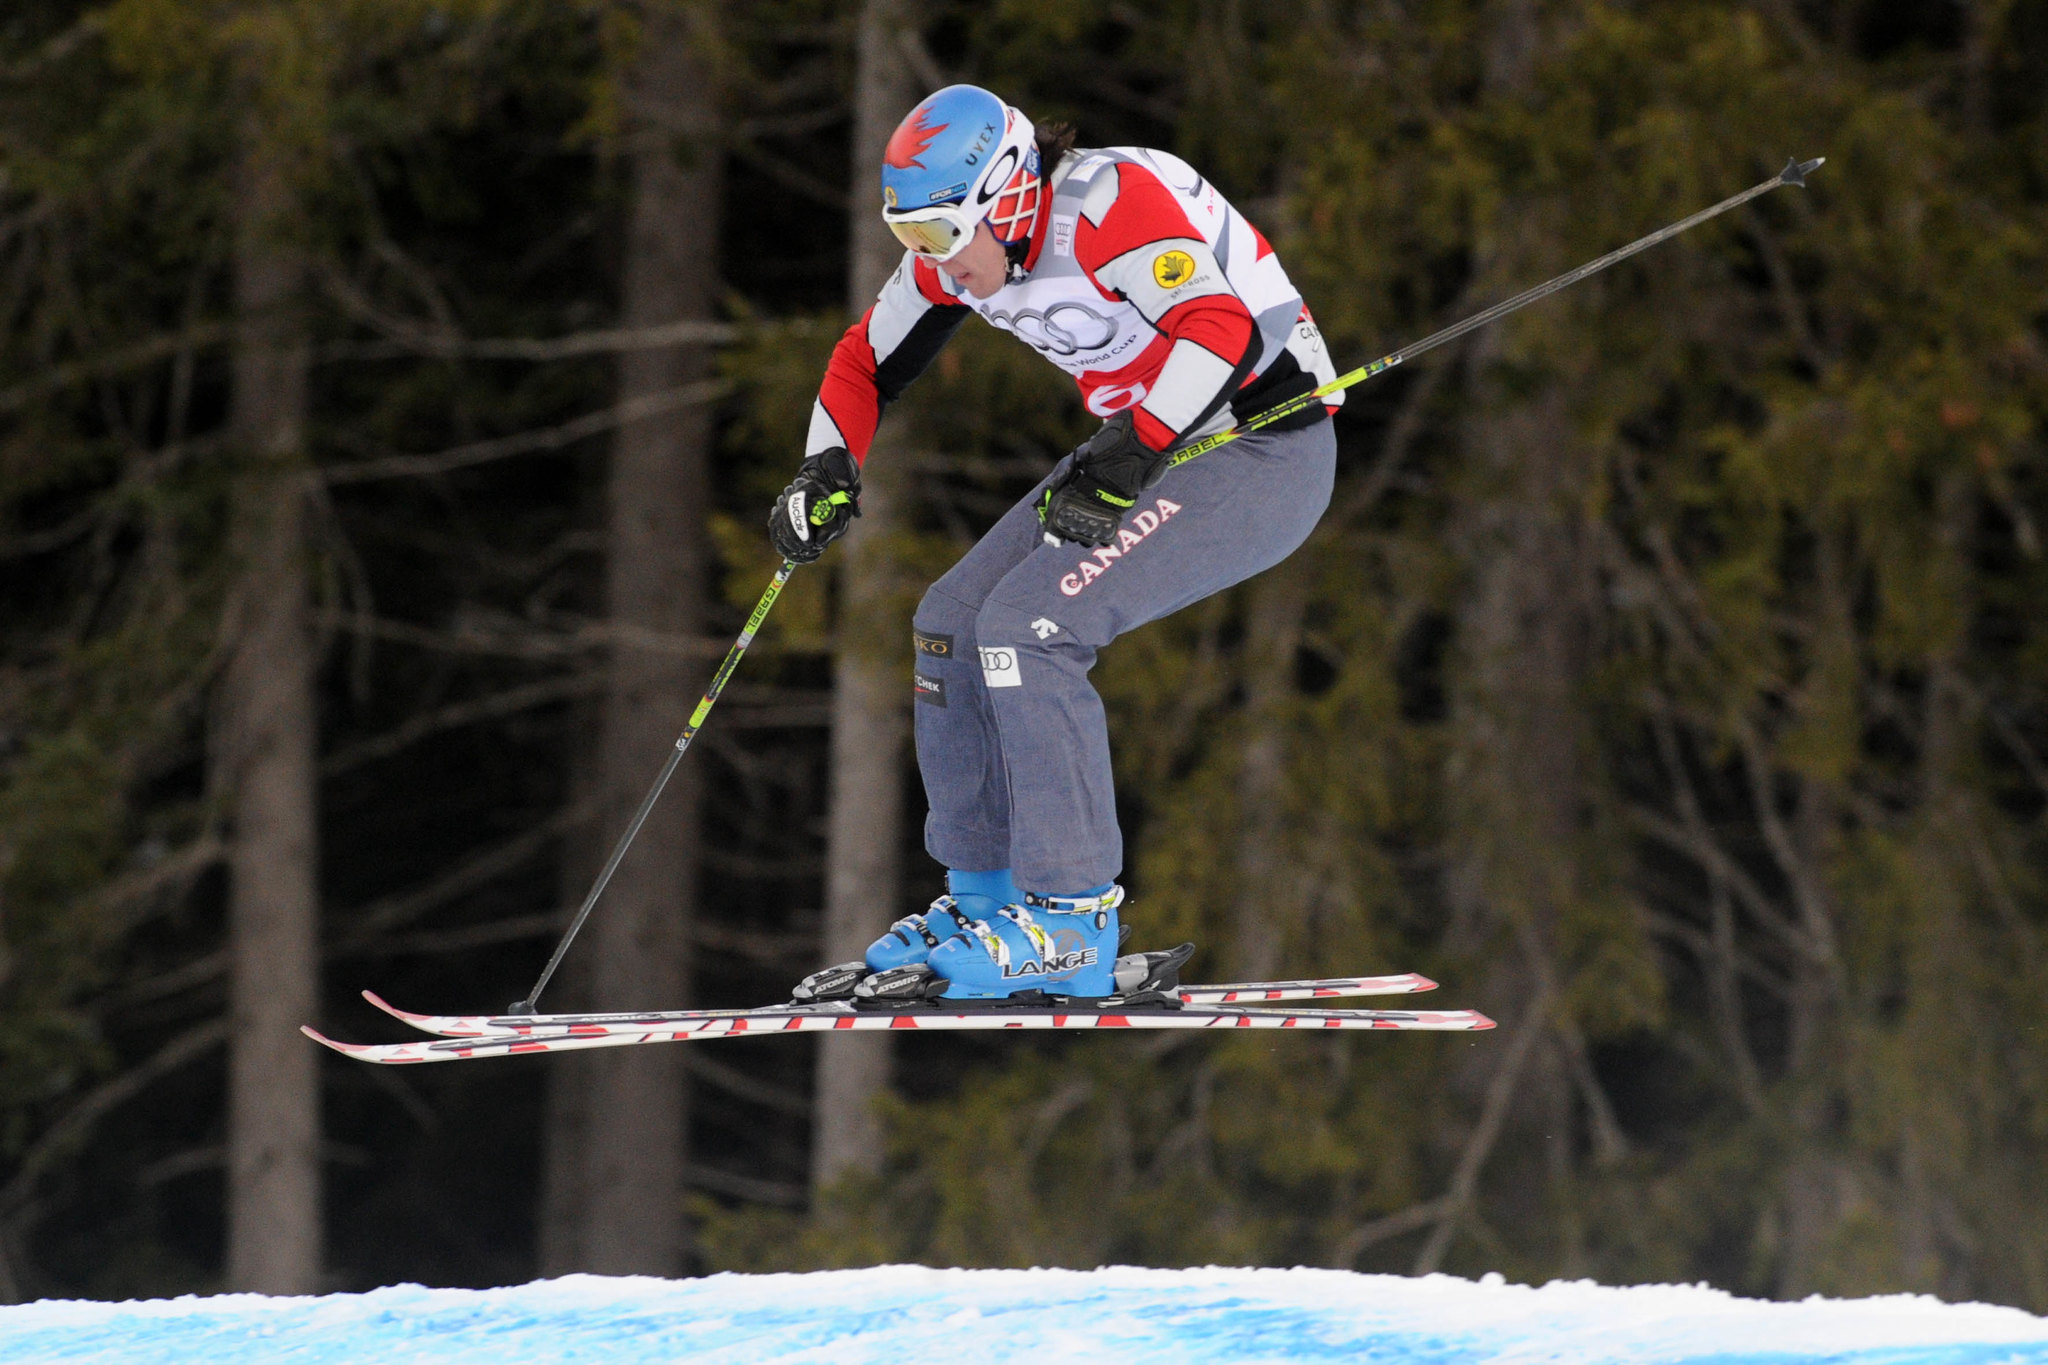 Tristan Tafel in a qualifying run at the ski cross World Cup in Innichen/San Candido, Italy.